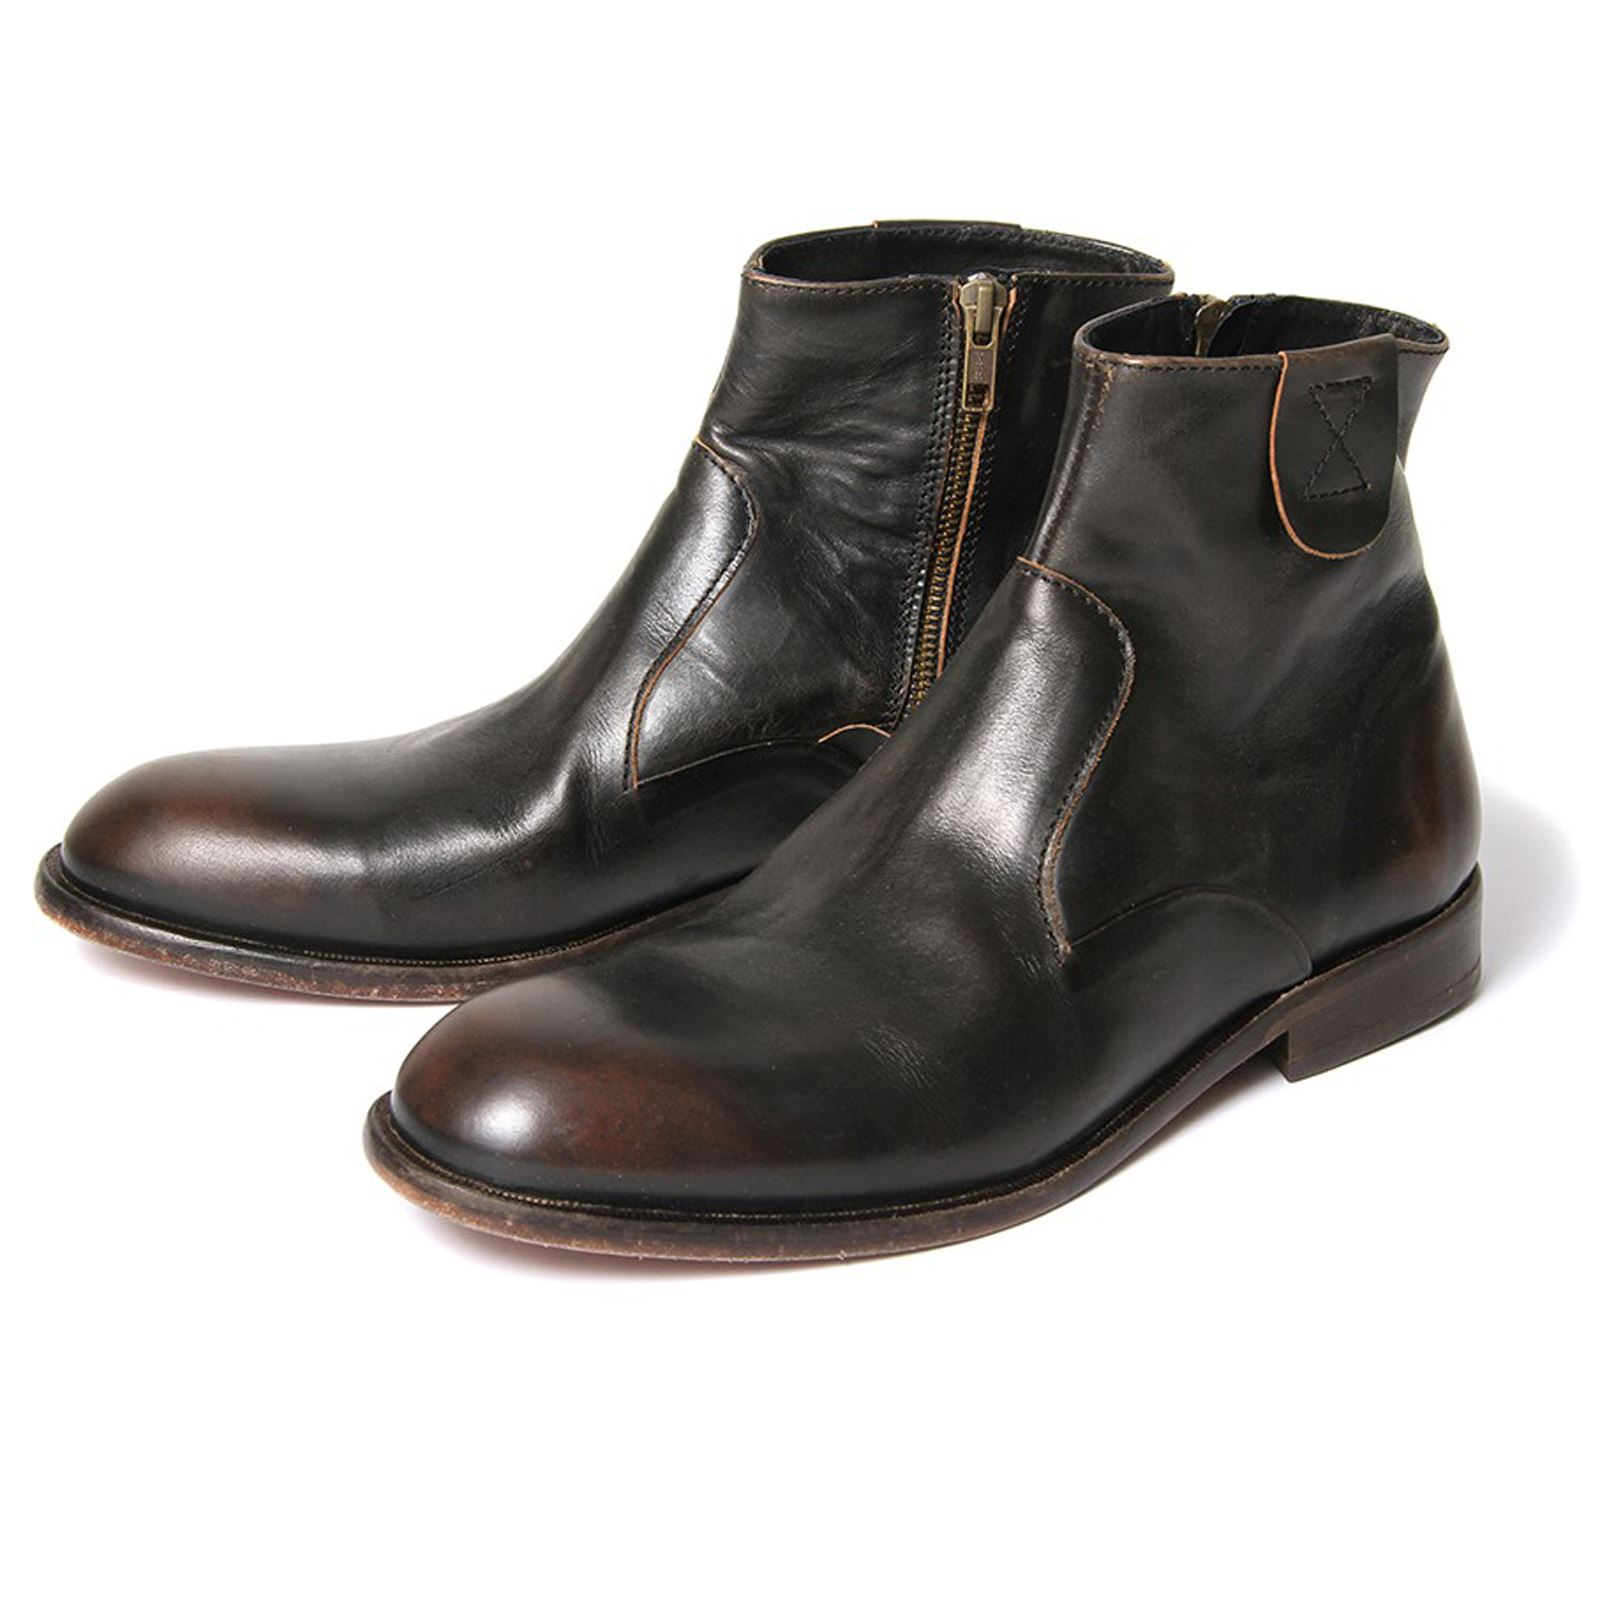 h by hudson boots haxton black leather mens ankle boot ebay